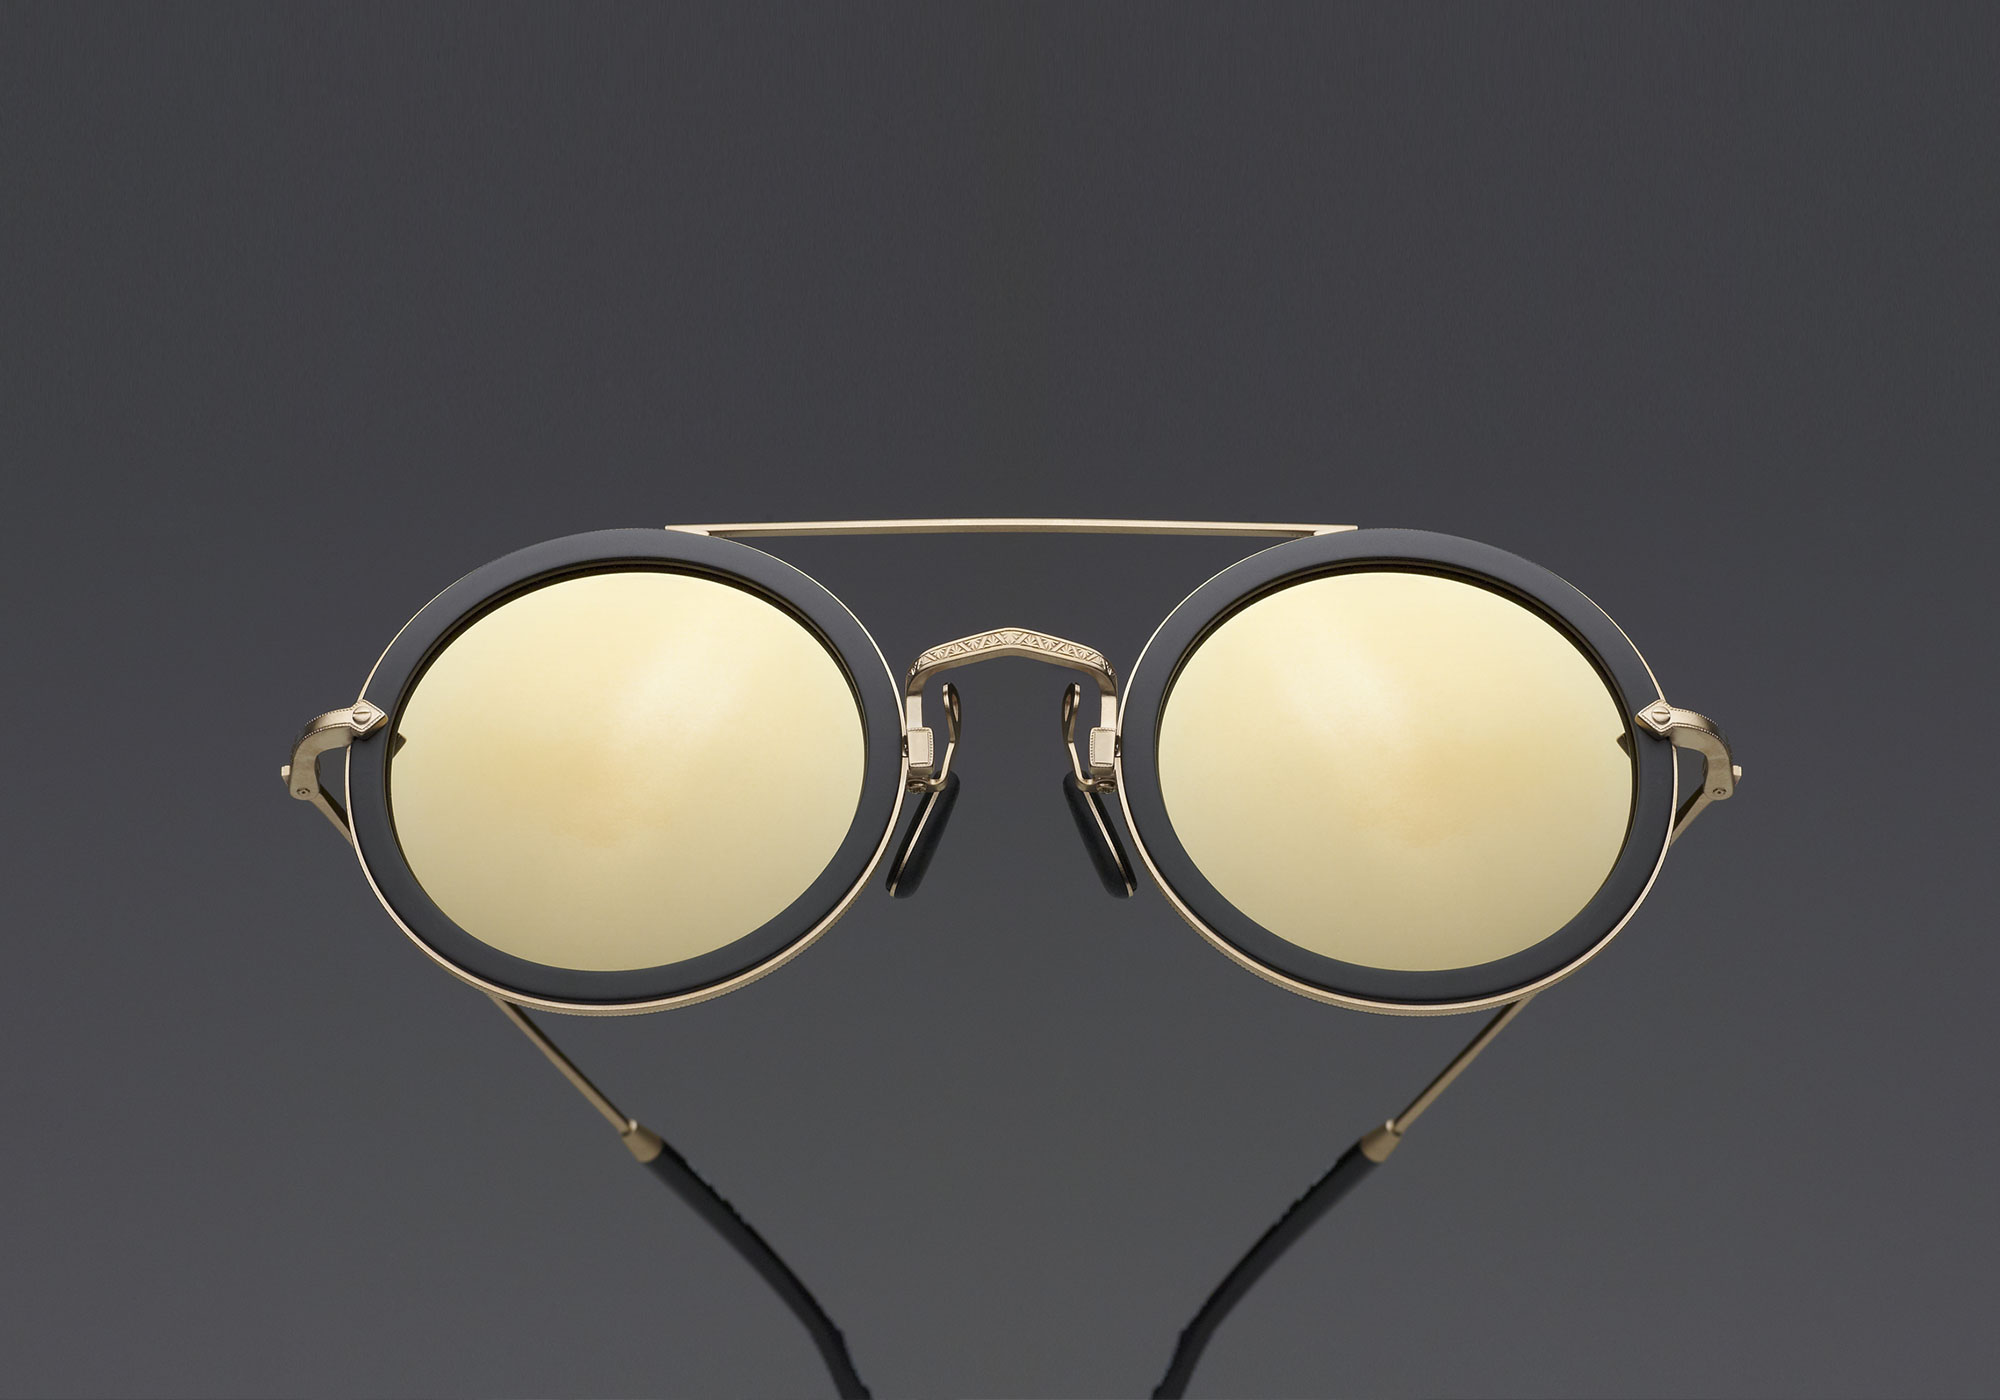 Matsuda, Silmo, Lunettes, The House of Eyewear, Paris